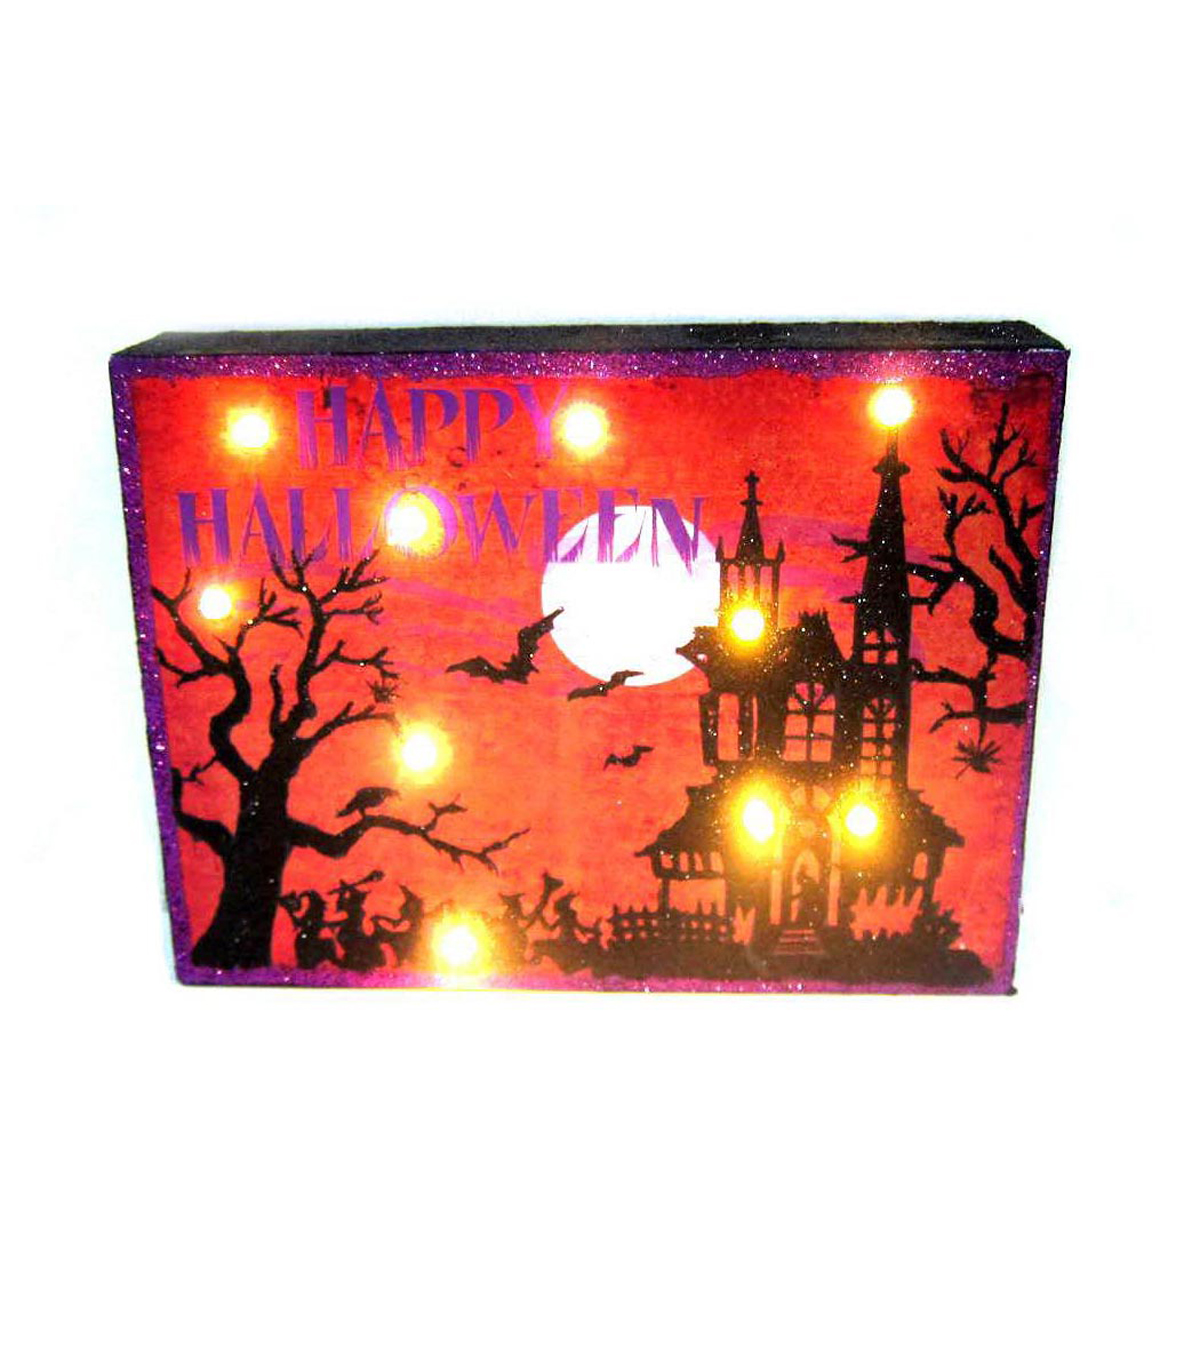 Maker's Halloween LED Table Decor-Haunted House